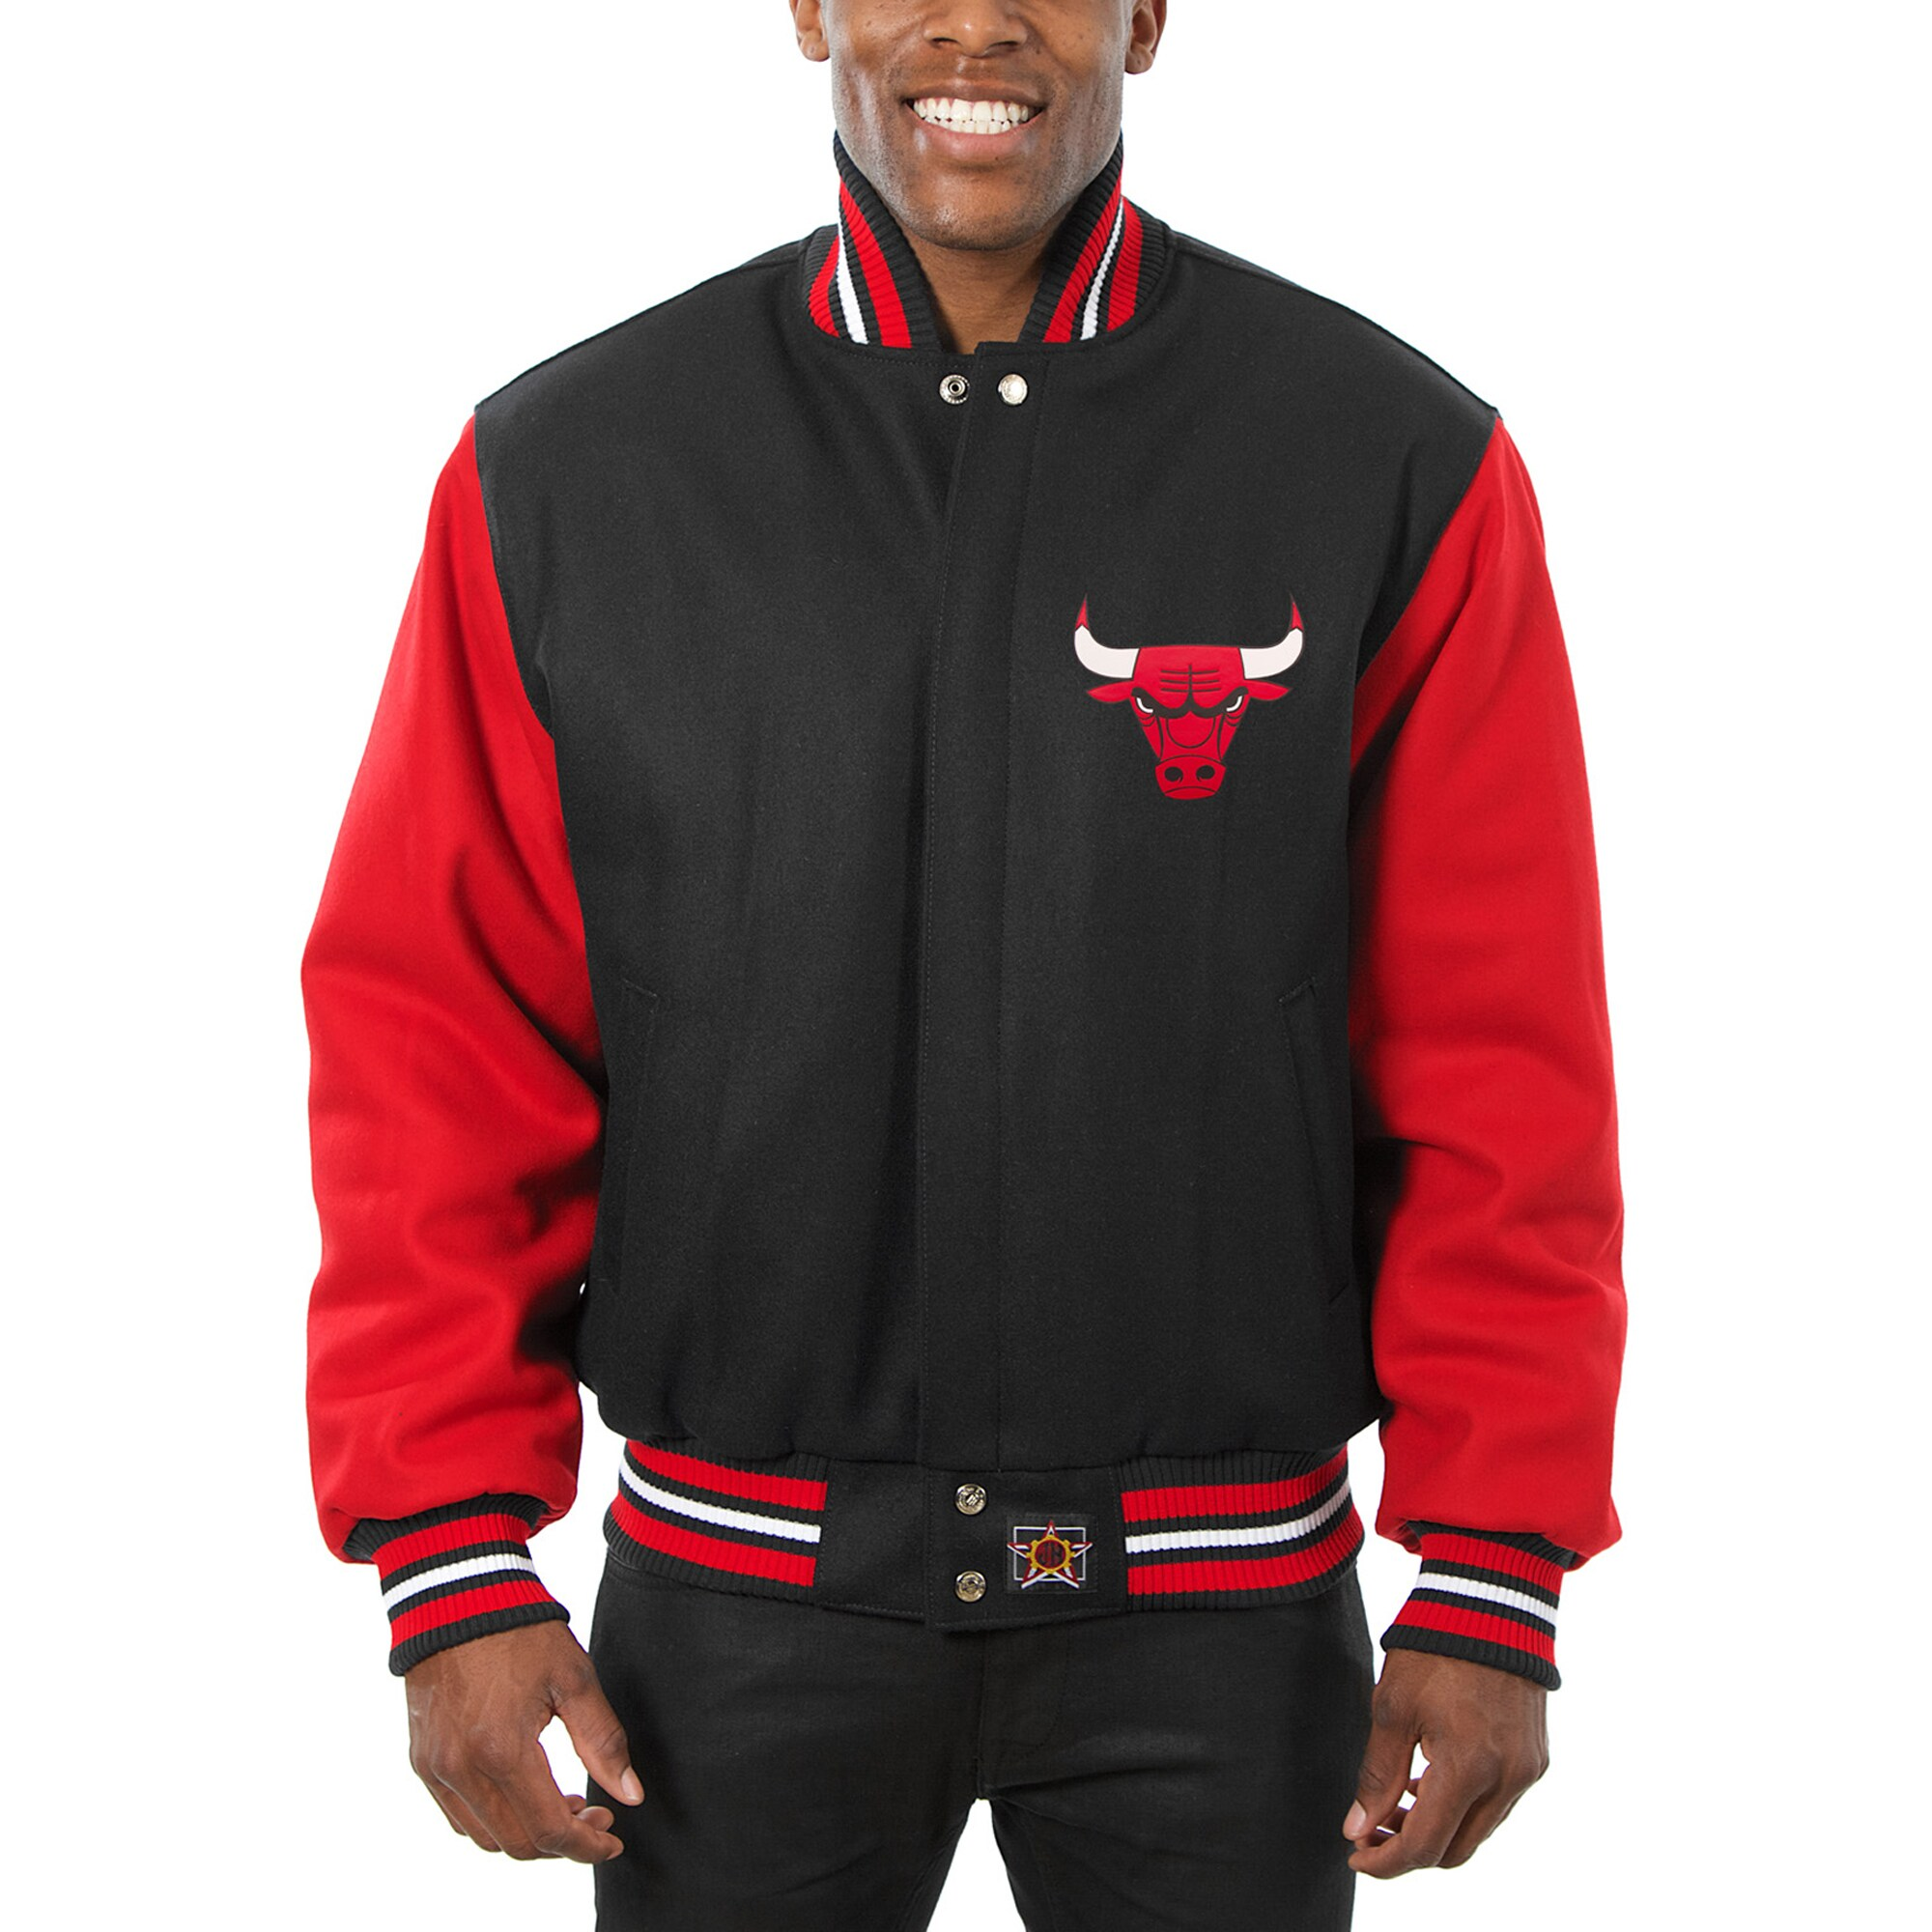 Chicago Bulls JH Design Big & Tall All Wool Jacket with Leather Logo - Black/Red